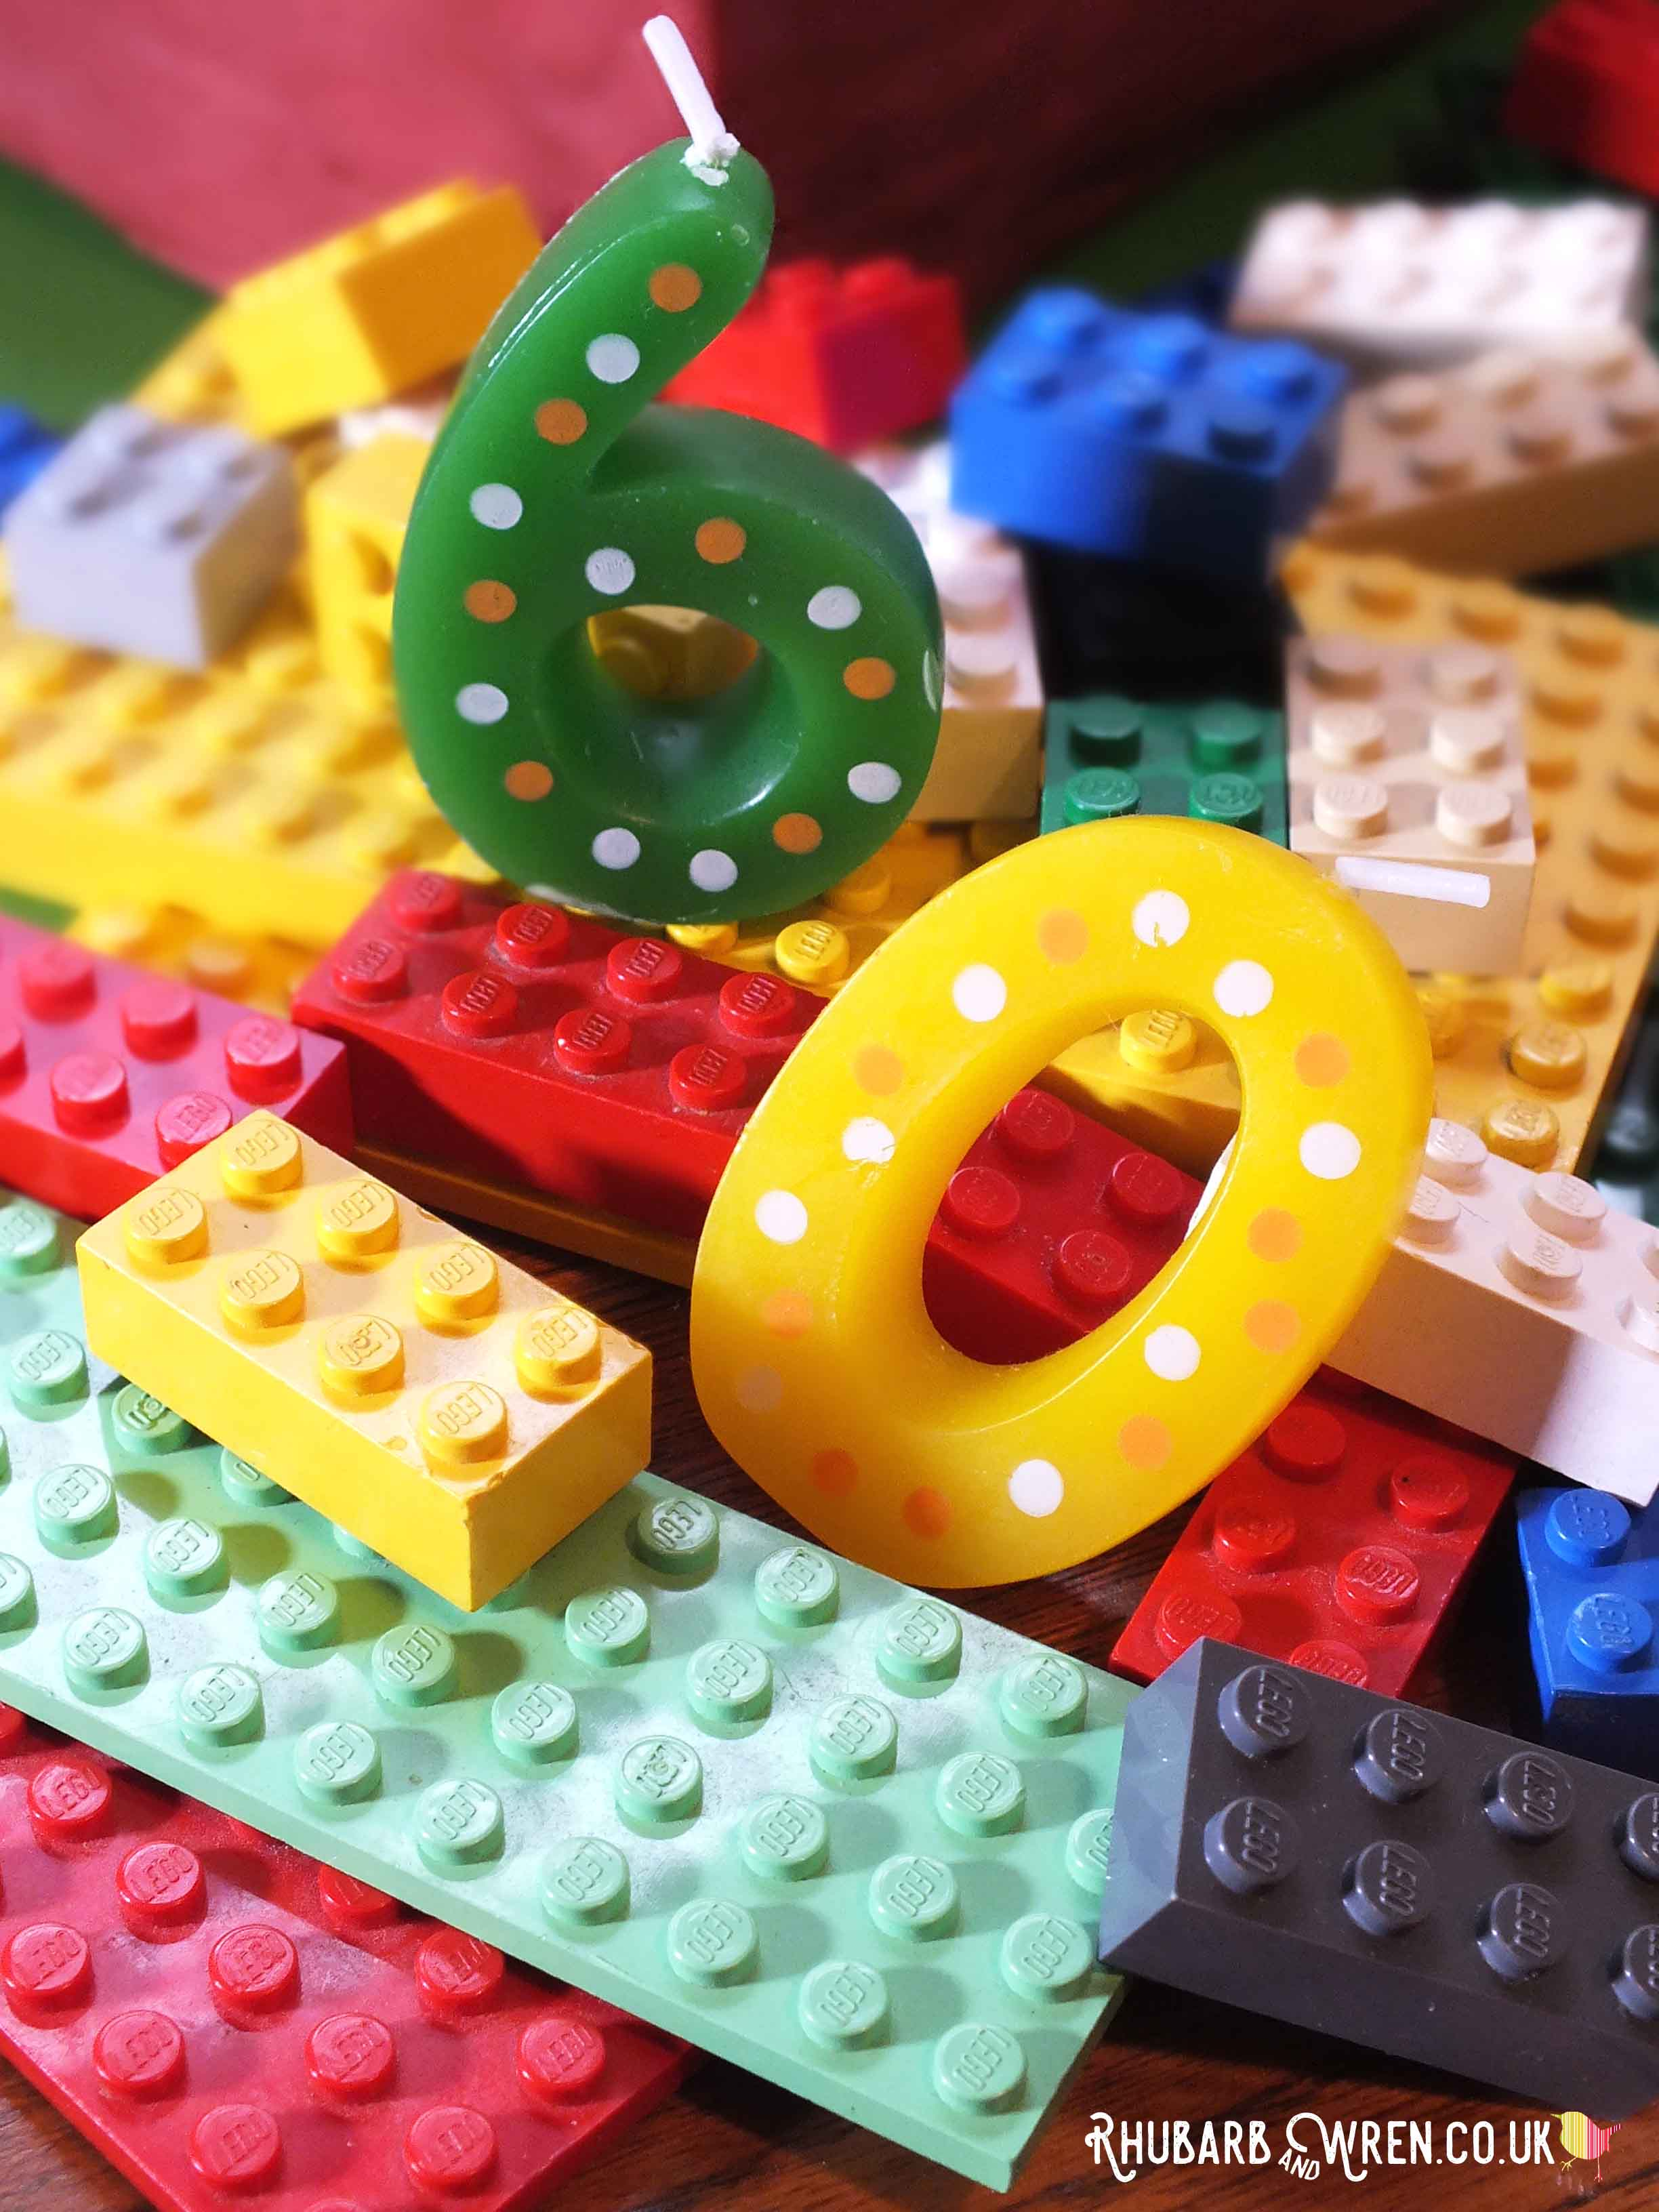 60th birthday candles in a pile of lego bricks